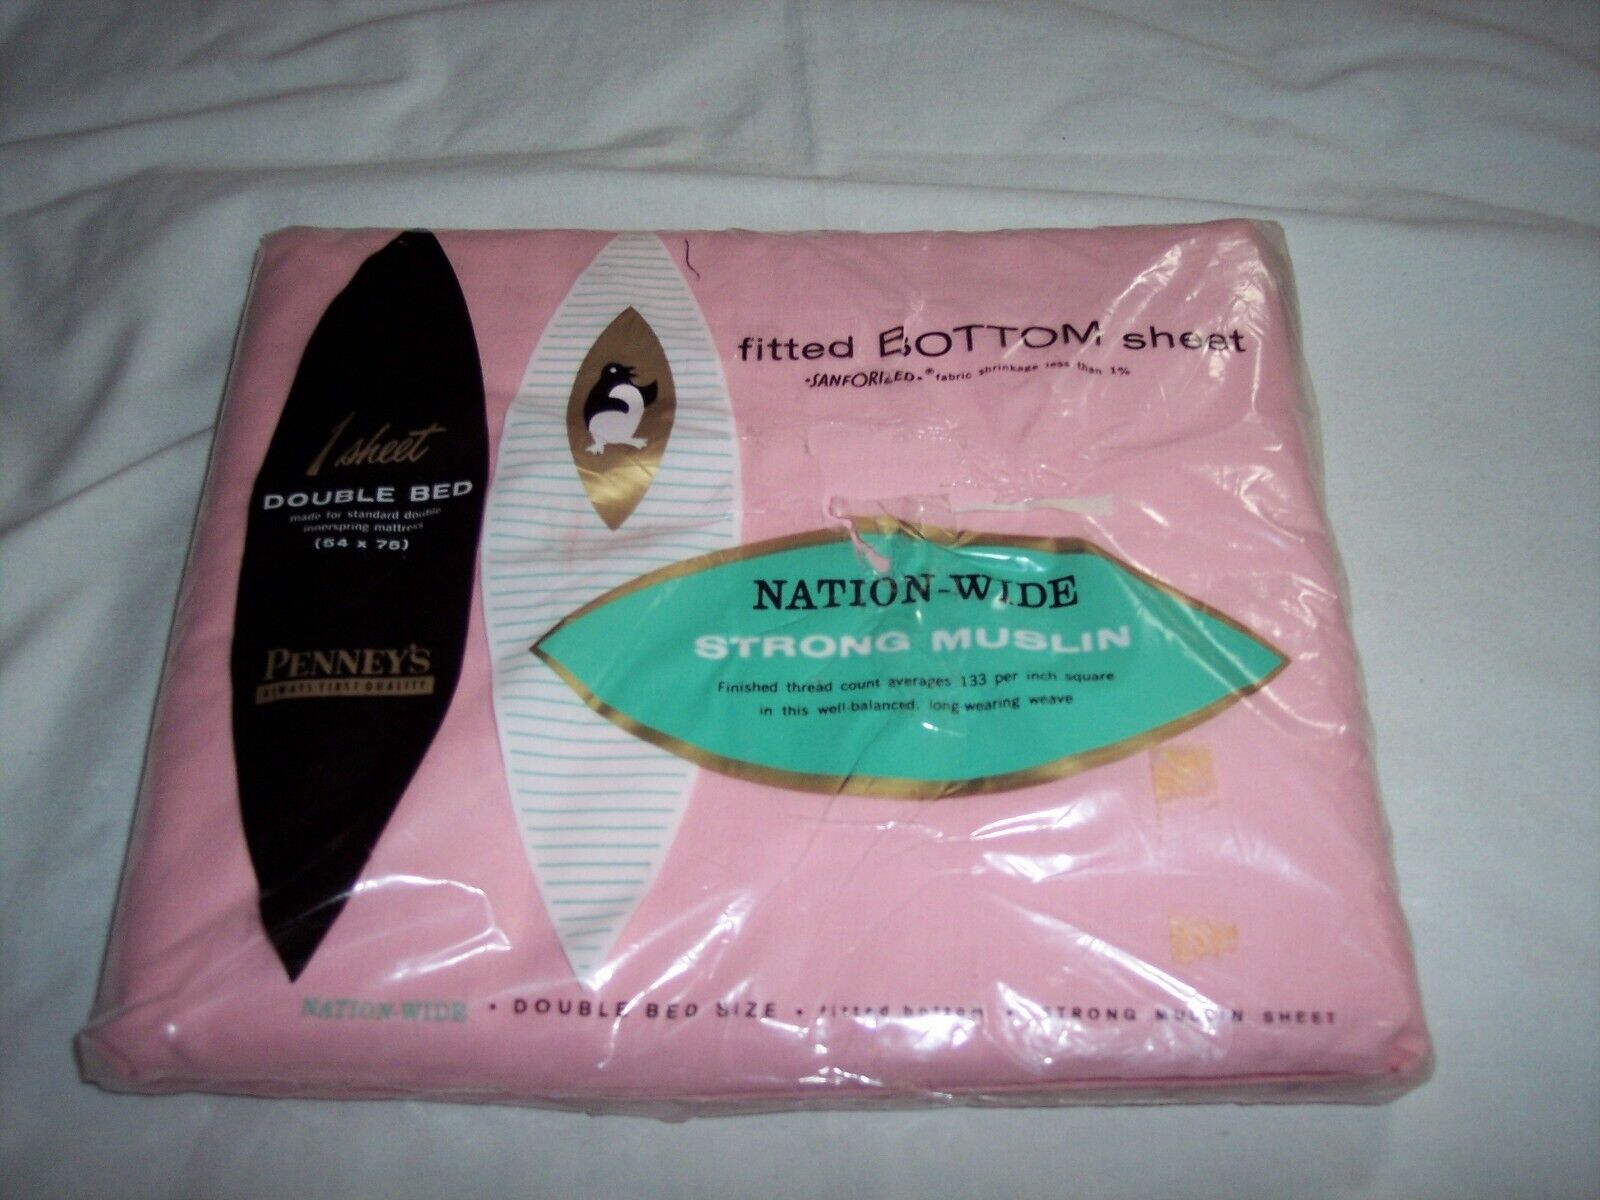 Nation Wide Sanforized Fitted Double Sheet Penney s 100 Cotton Muslin Pink Vtg - $21.00